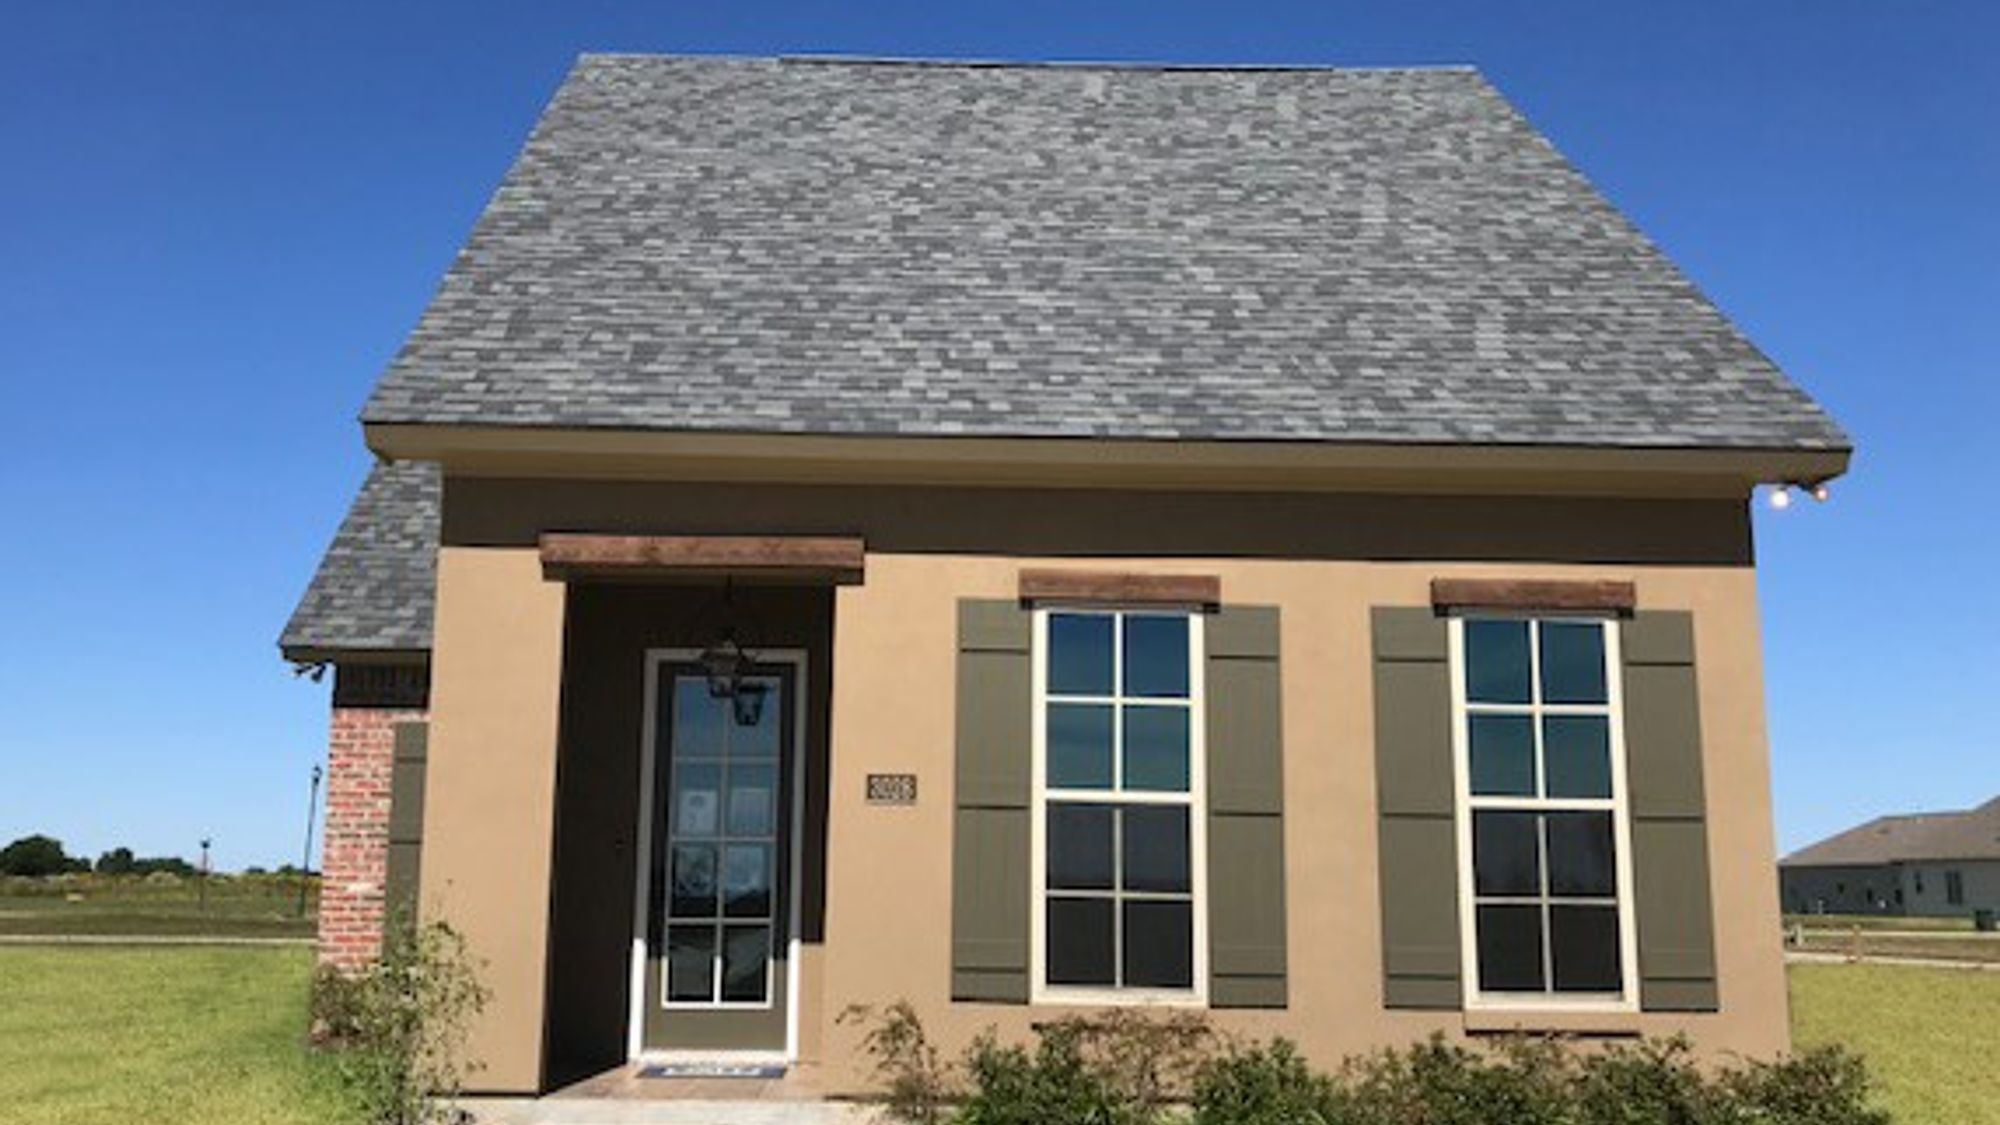 Front View - The Village at Morganfield Community - DSLD Homes Lake Charles